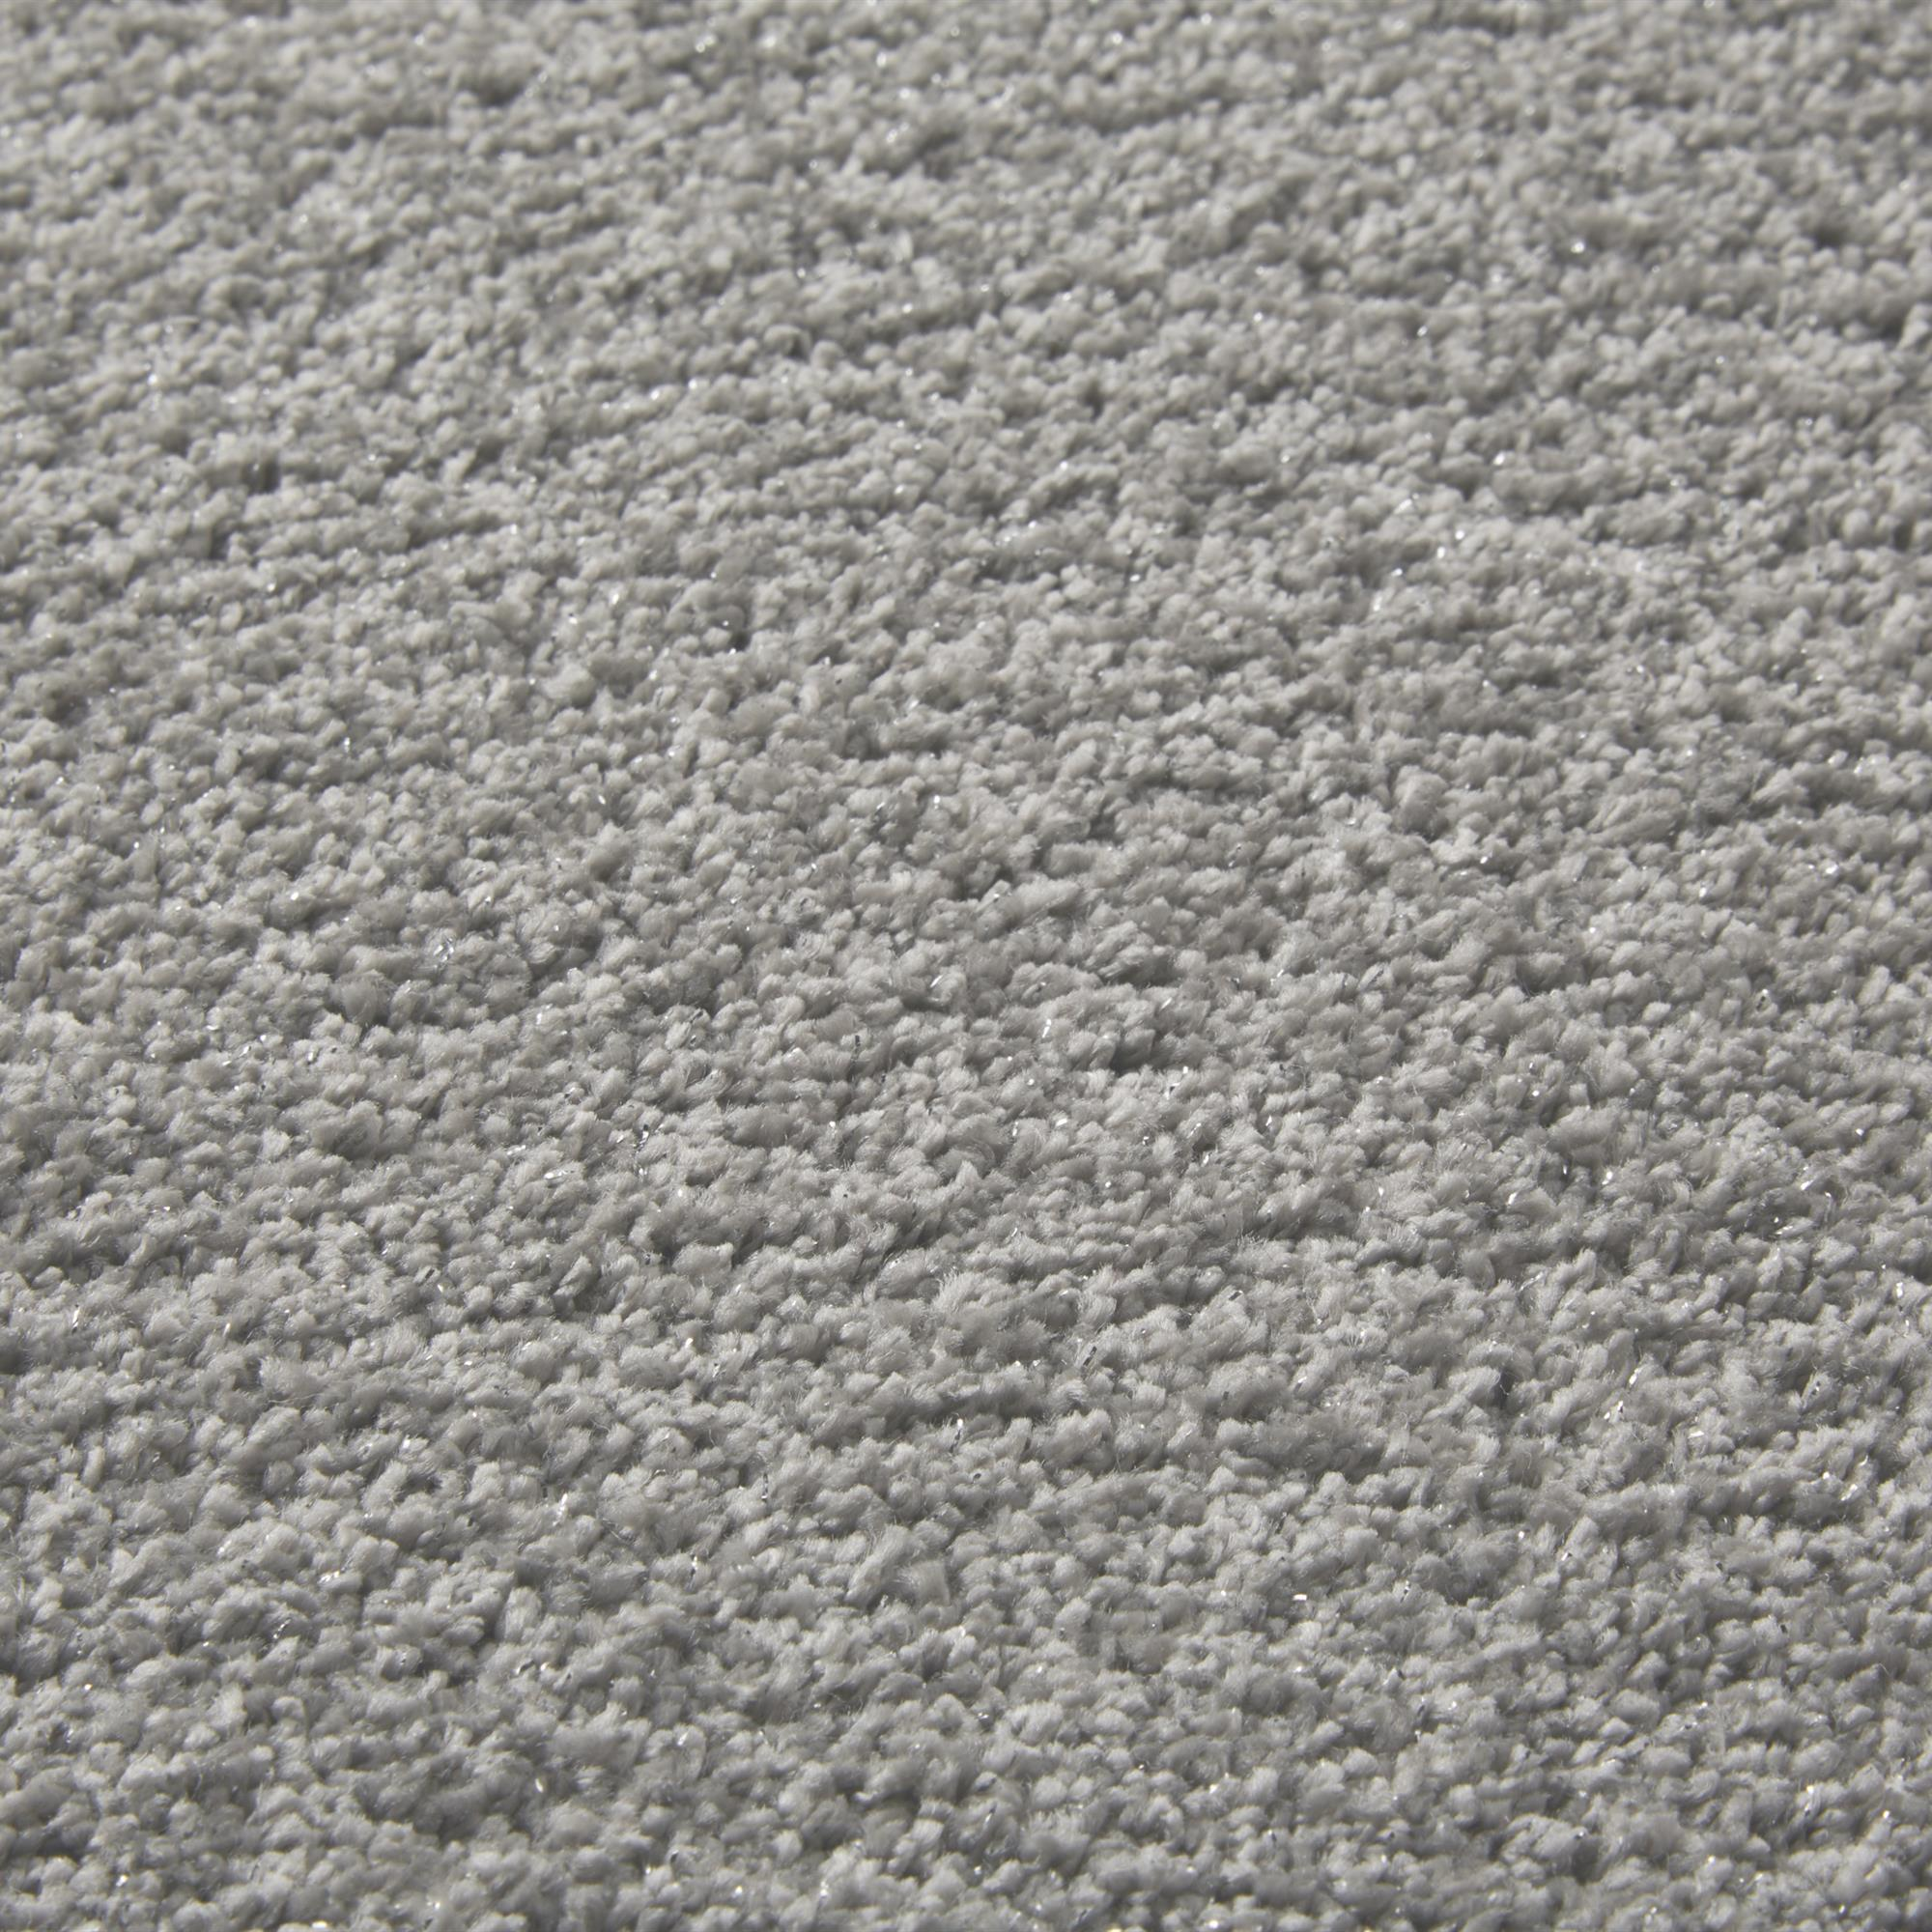 Associated Weavers Proxima Carpet, 92 Silver Cloud, swatch